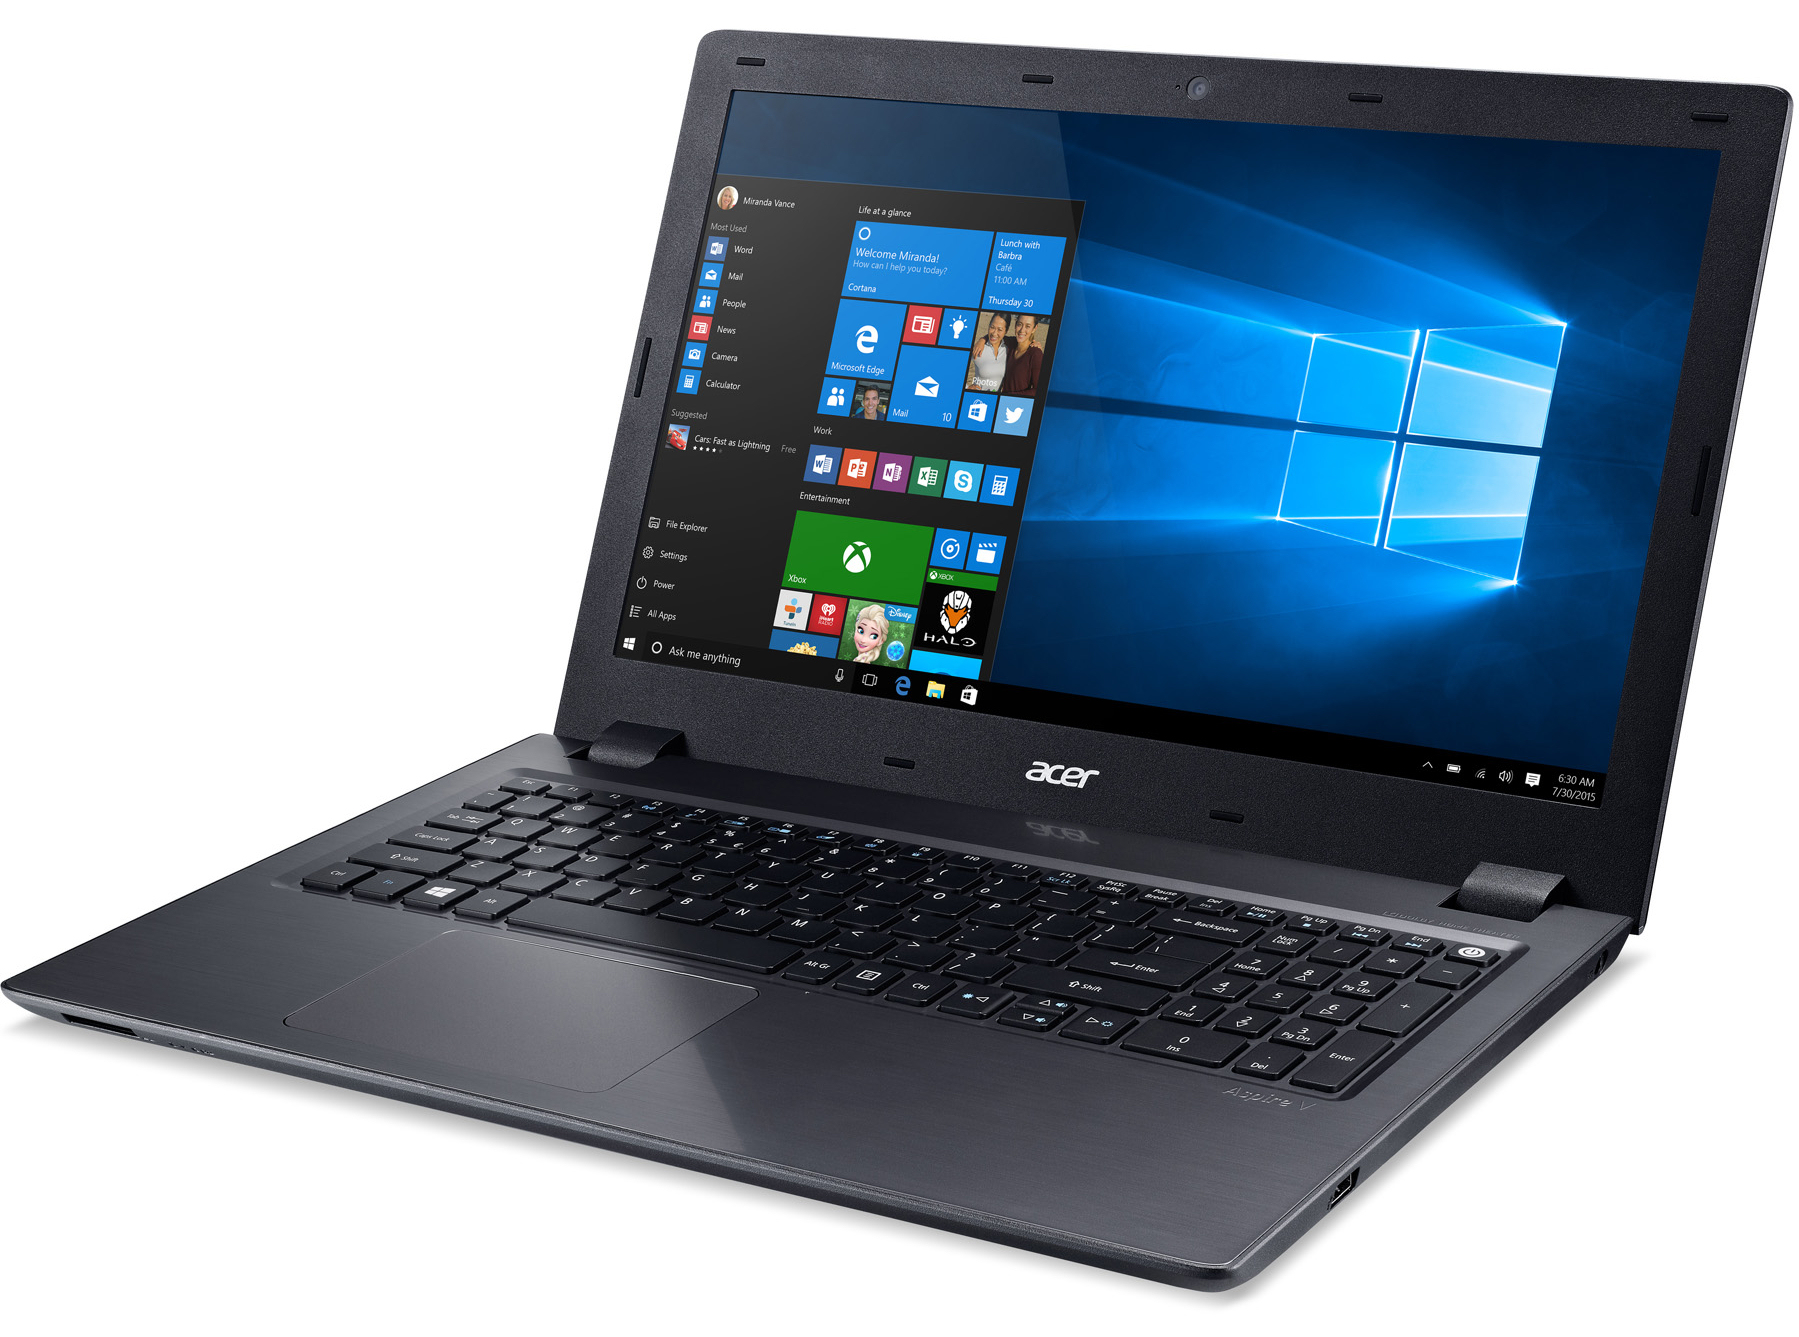 Acer Aspire V5-573P Realtek Card Reader Drivers for Windows 7